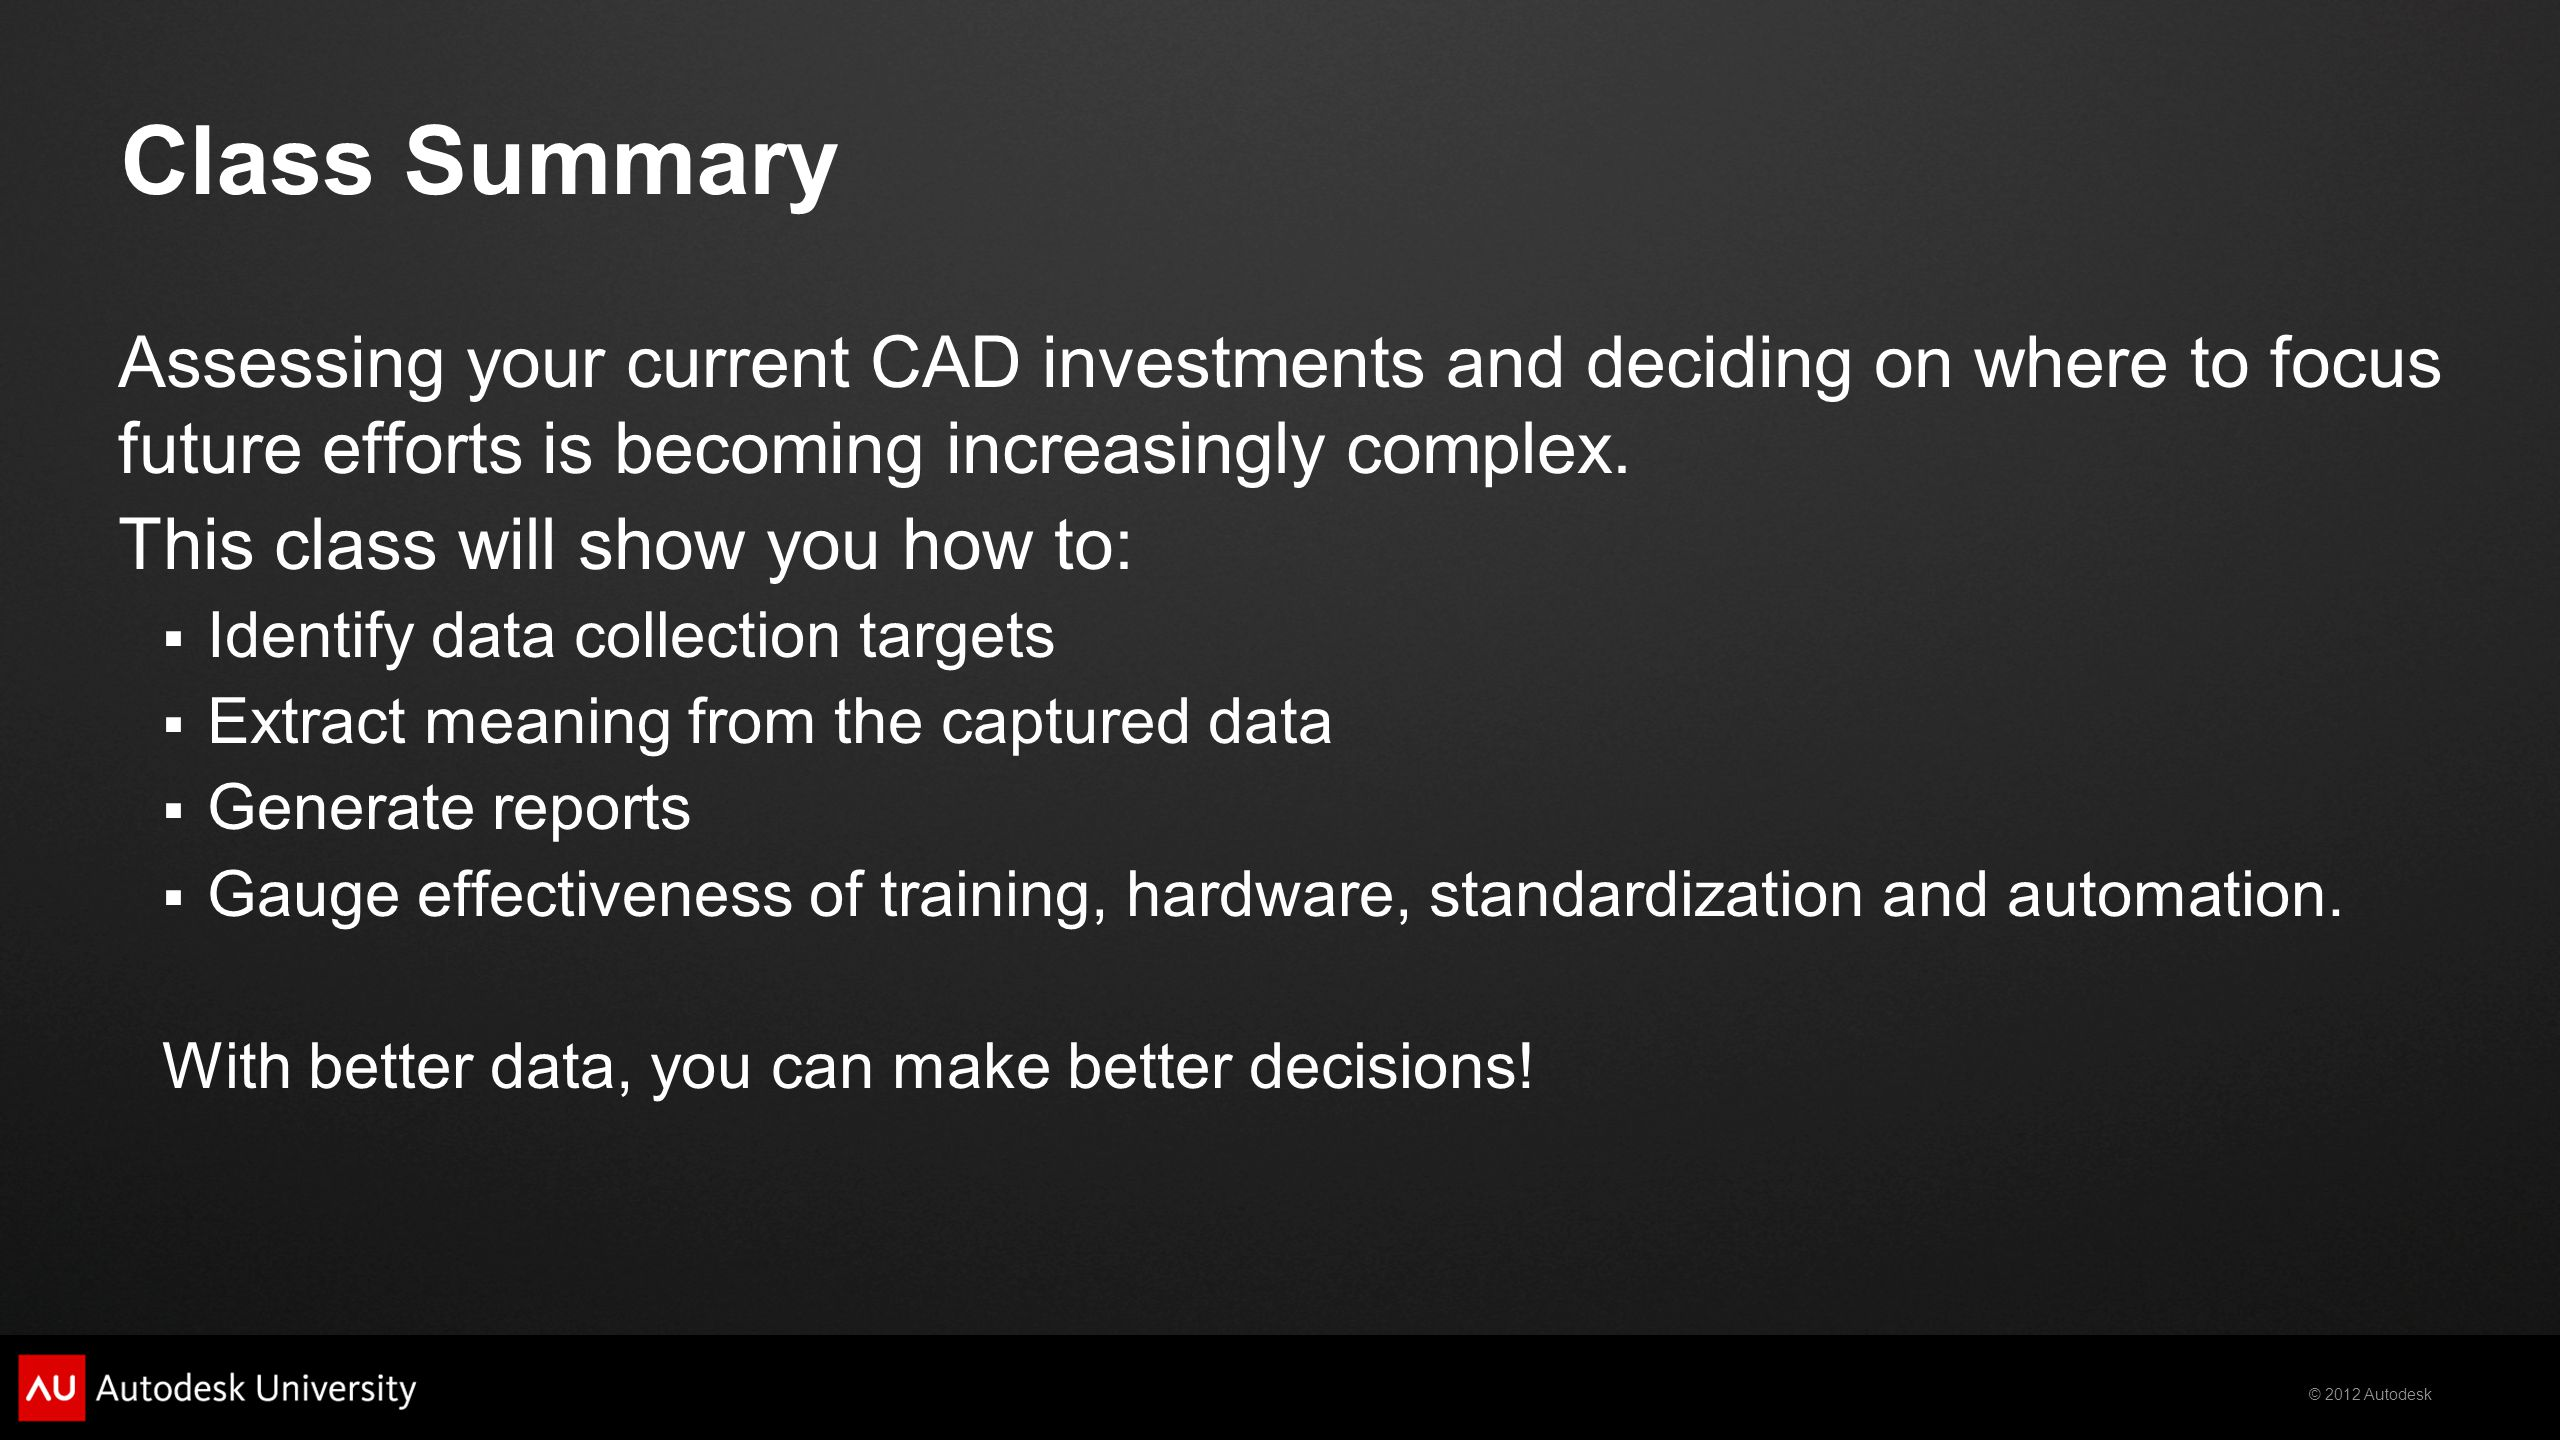 Class Summary Assessing your current CAD investments and deciding on where to focus future efforts is becoming increasingly complex.